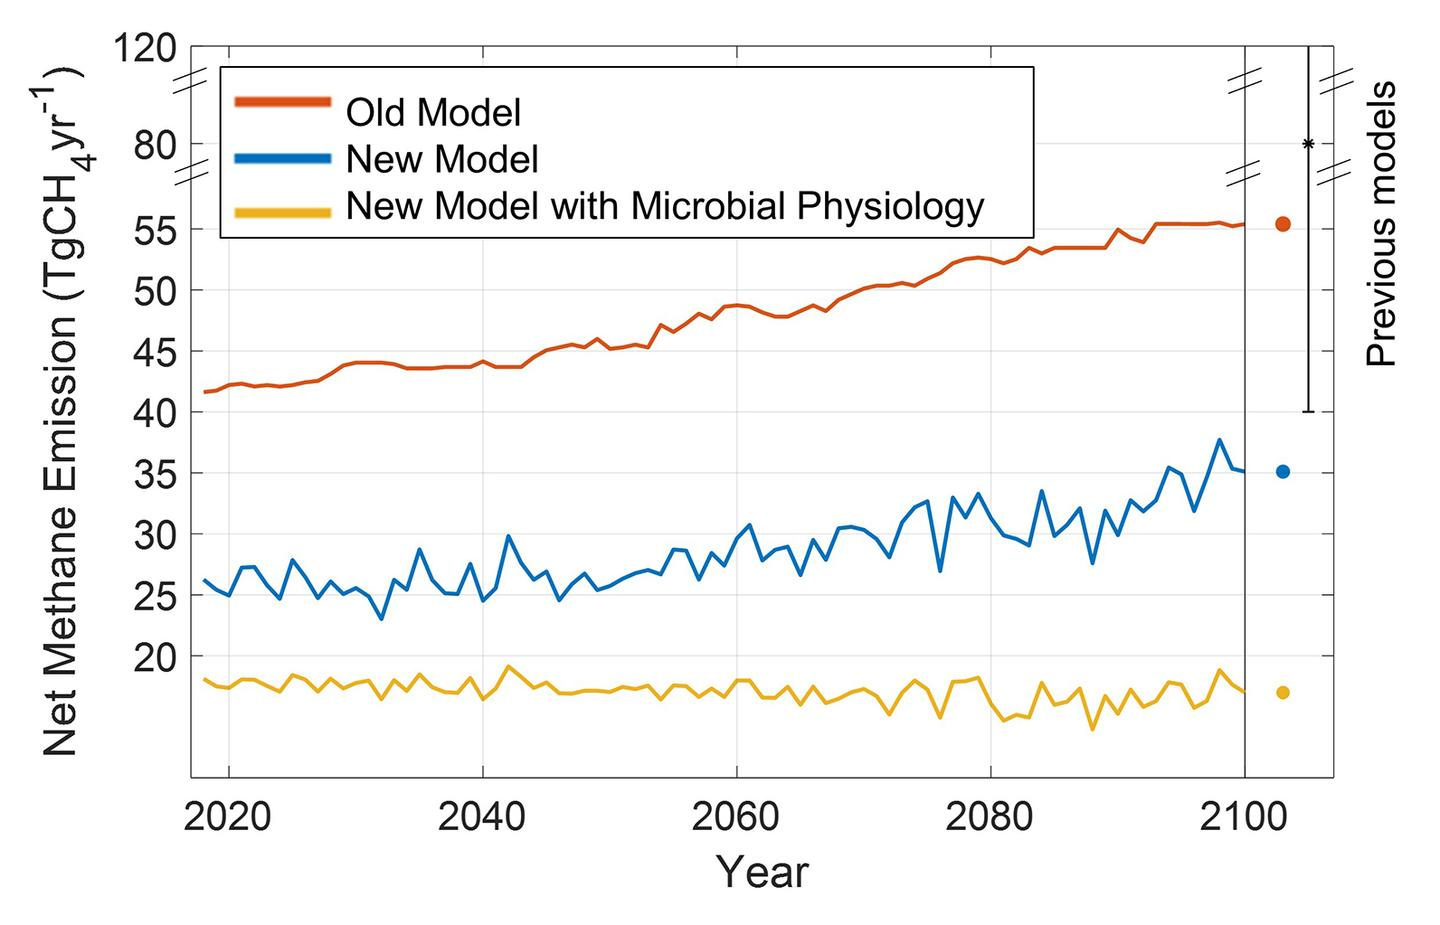 A chart comparing the old and new models of permafrost methane emissions